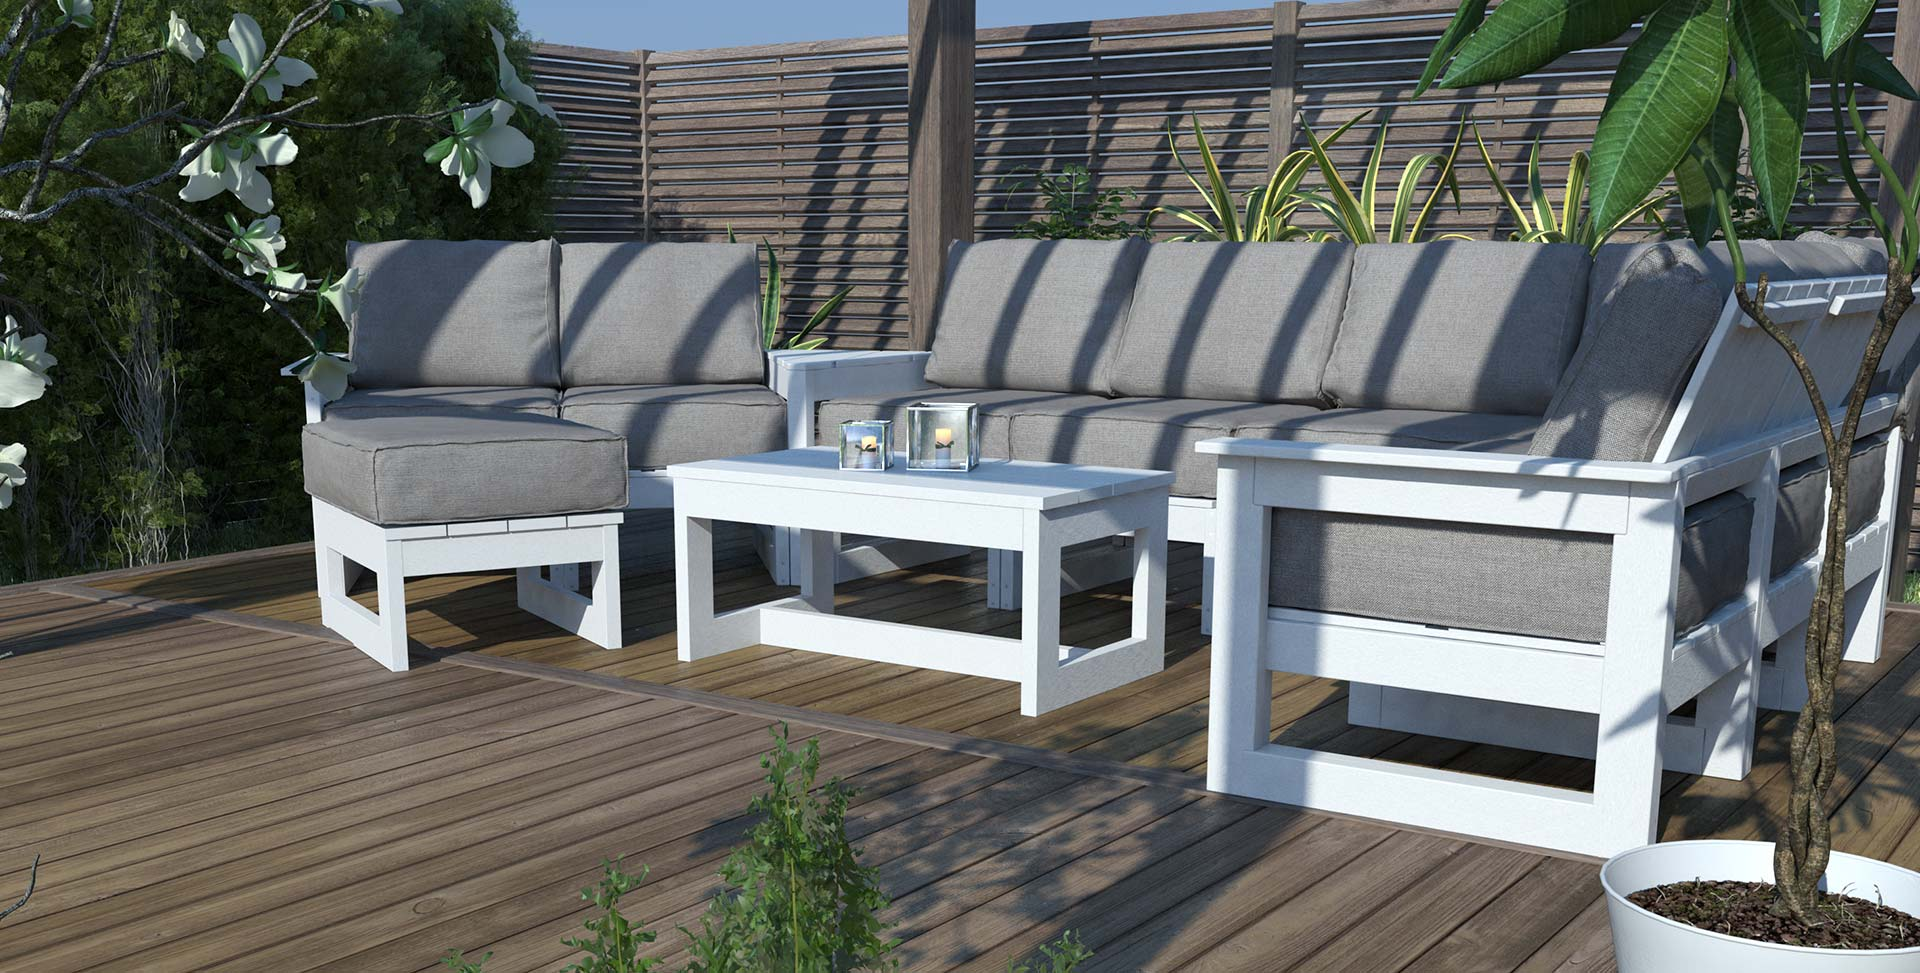 Remarkable Sister Bay Premium Recycled Plastic Outdoor Furniture Home Interior Design Ideas Jittwwsoteloinfo